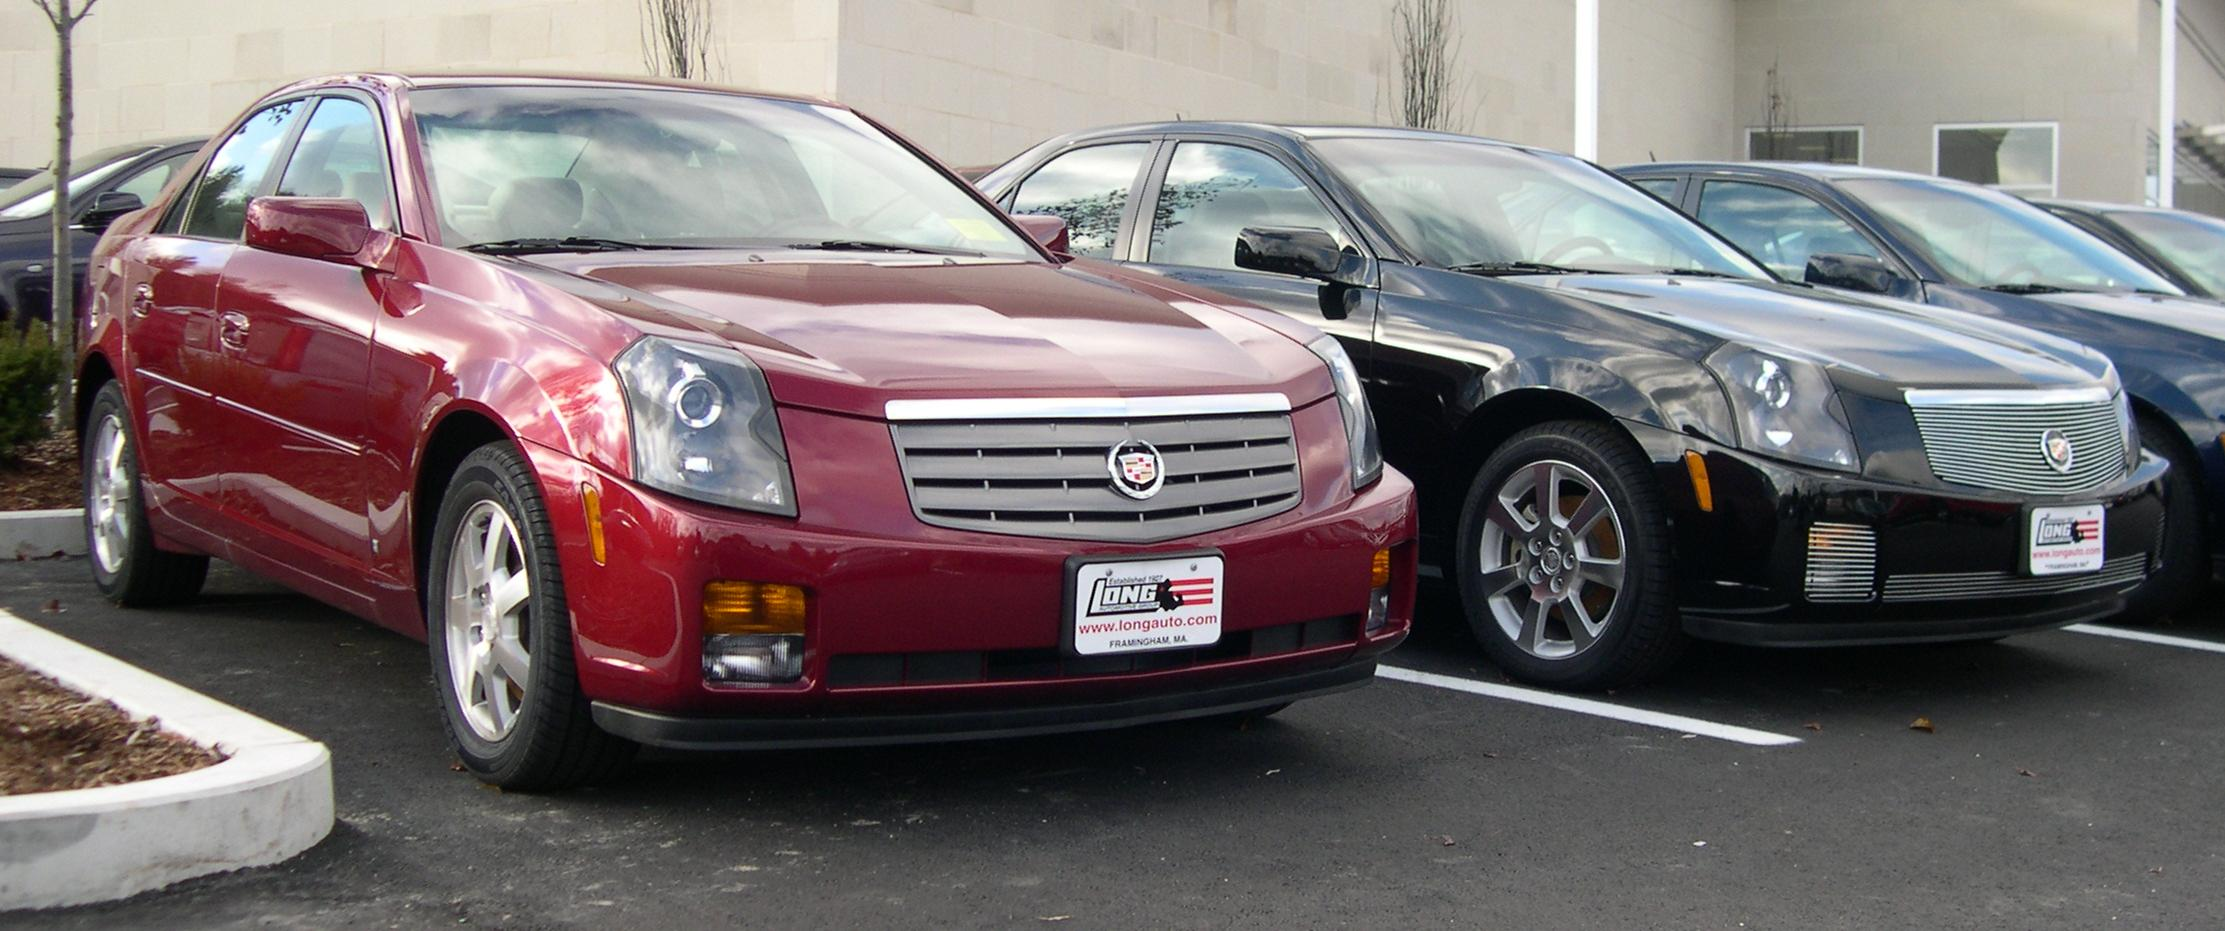 File:2006 Cadillac CTS x2.jpg - Wikimedia Commons